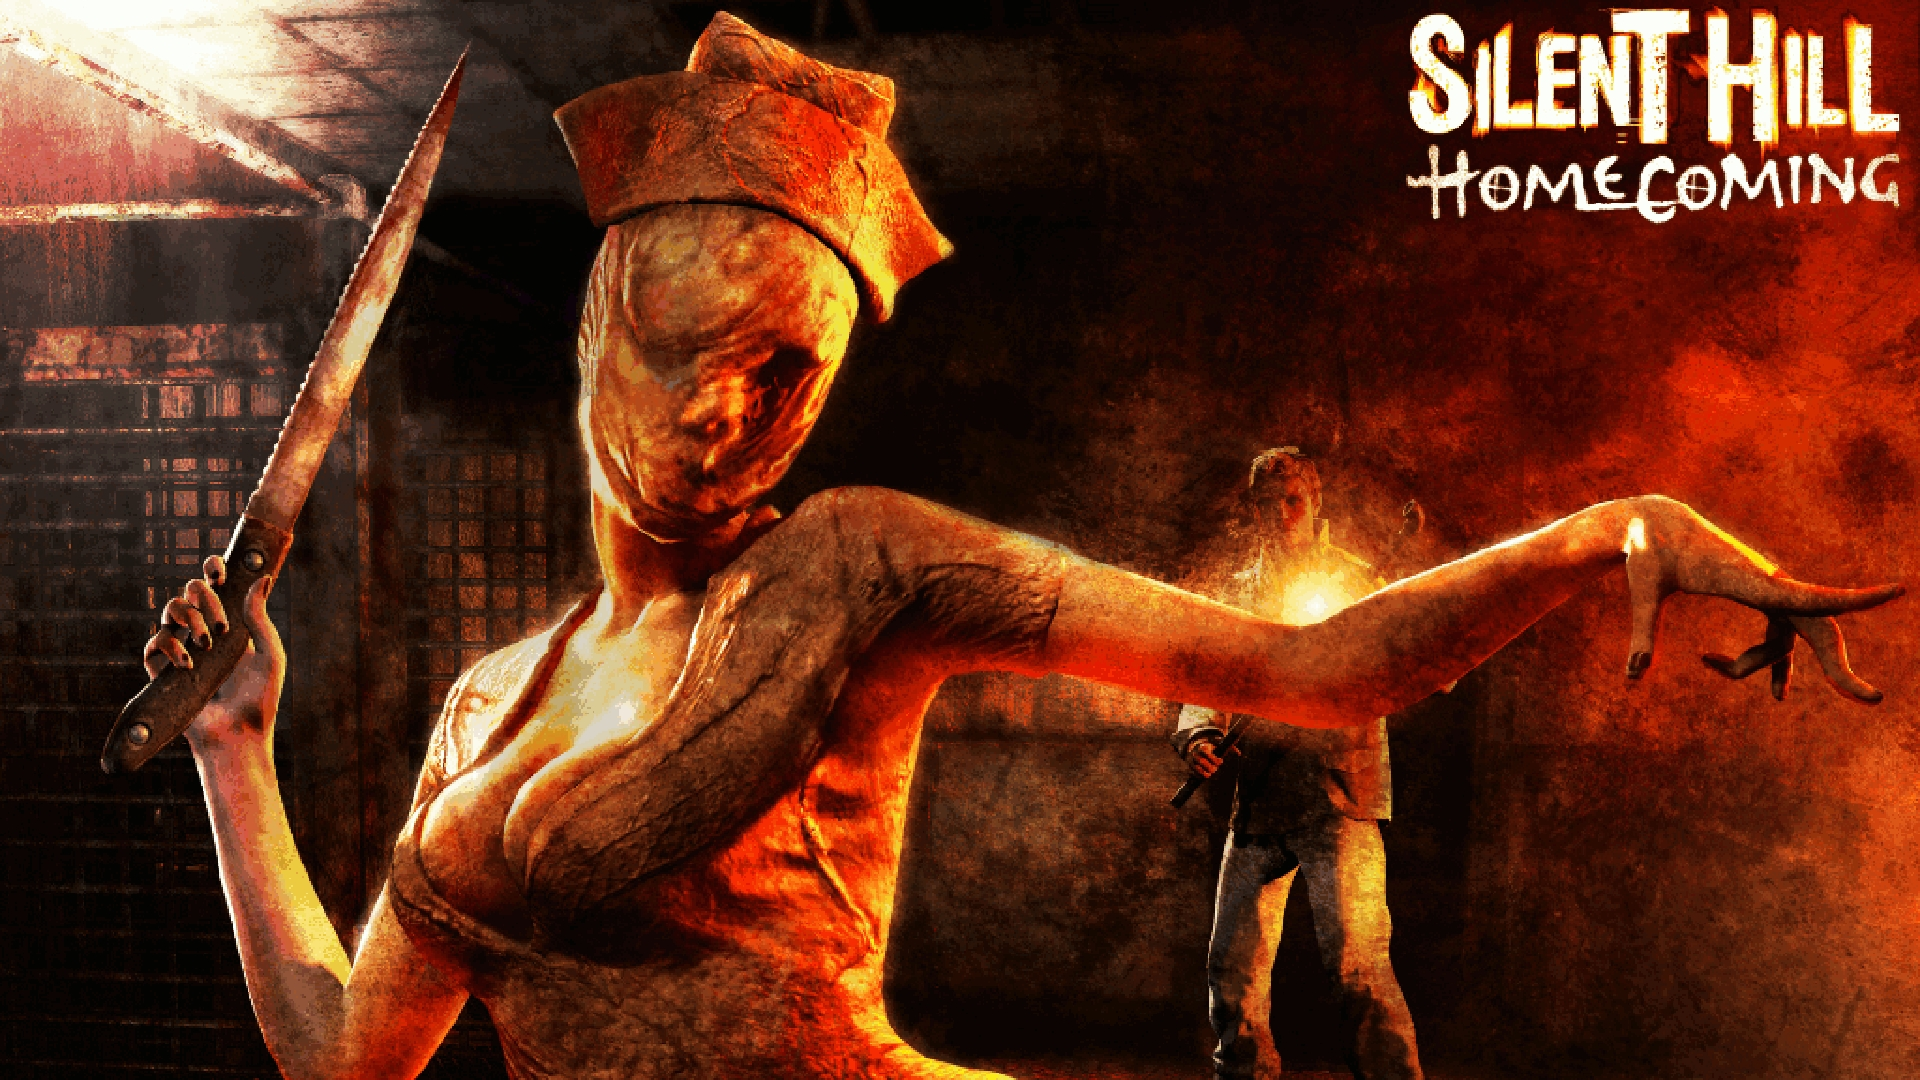 Silent hill nude images porn pics